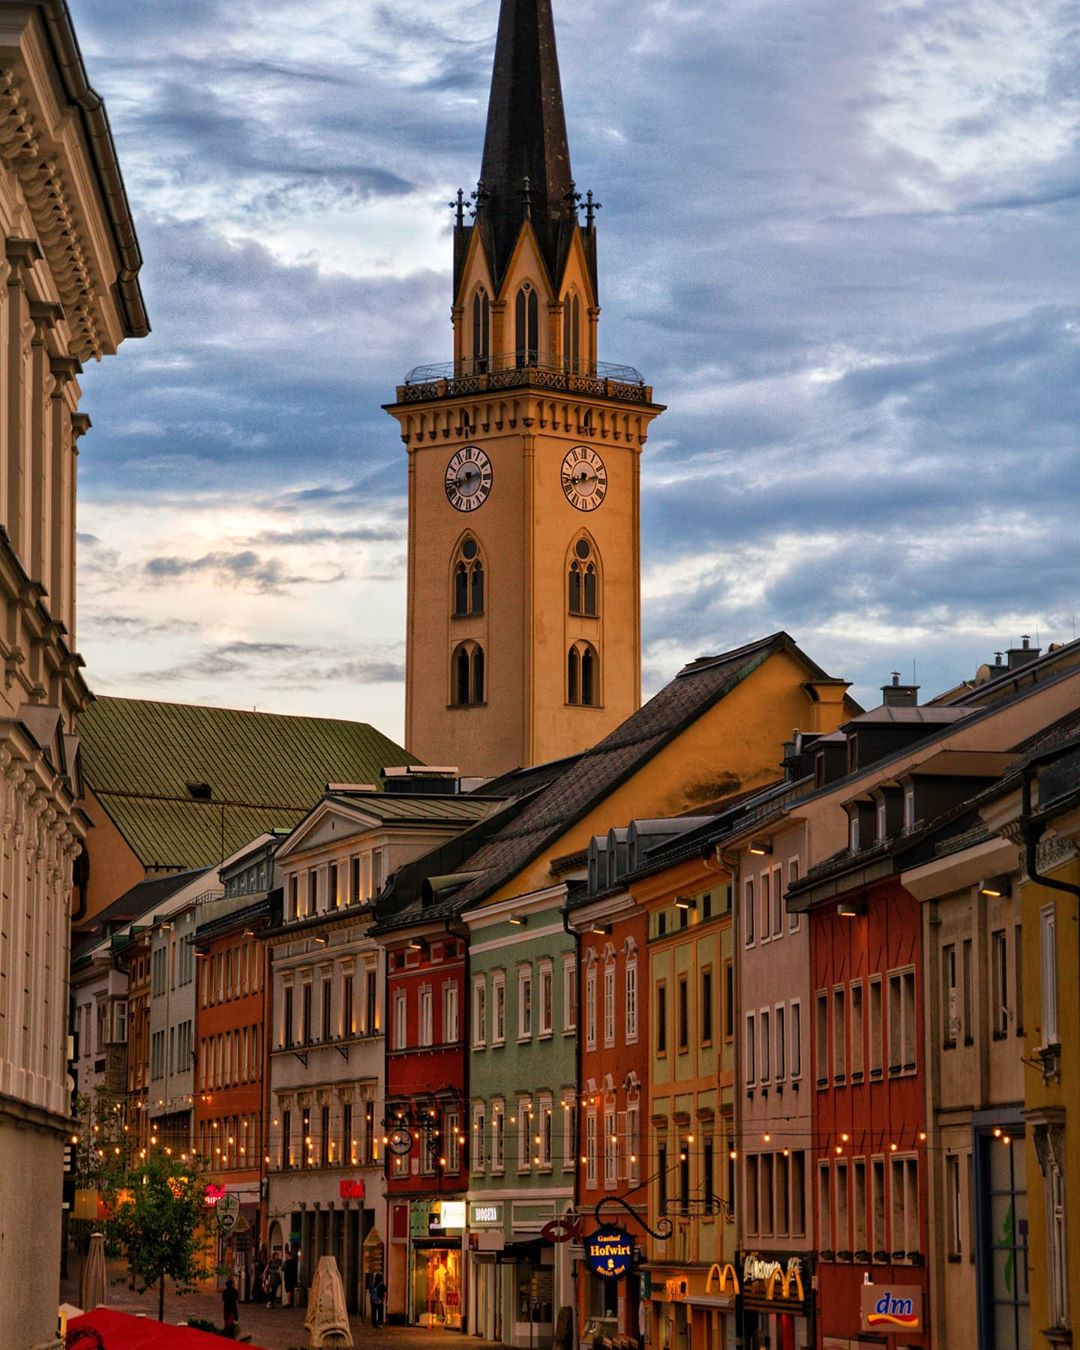 Old town of Villach